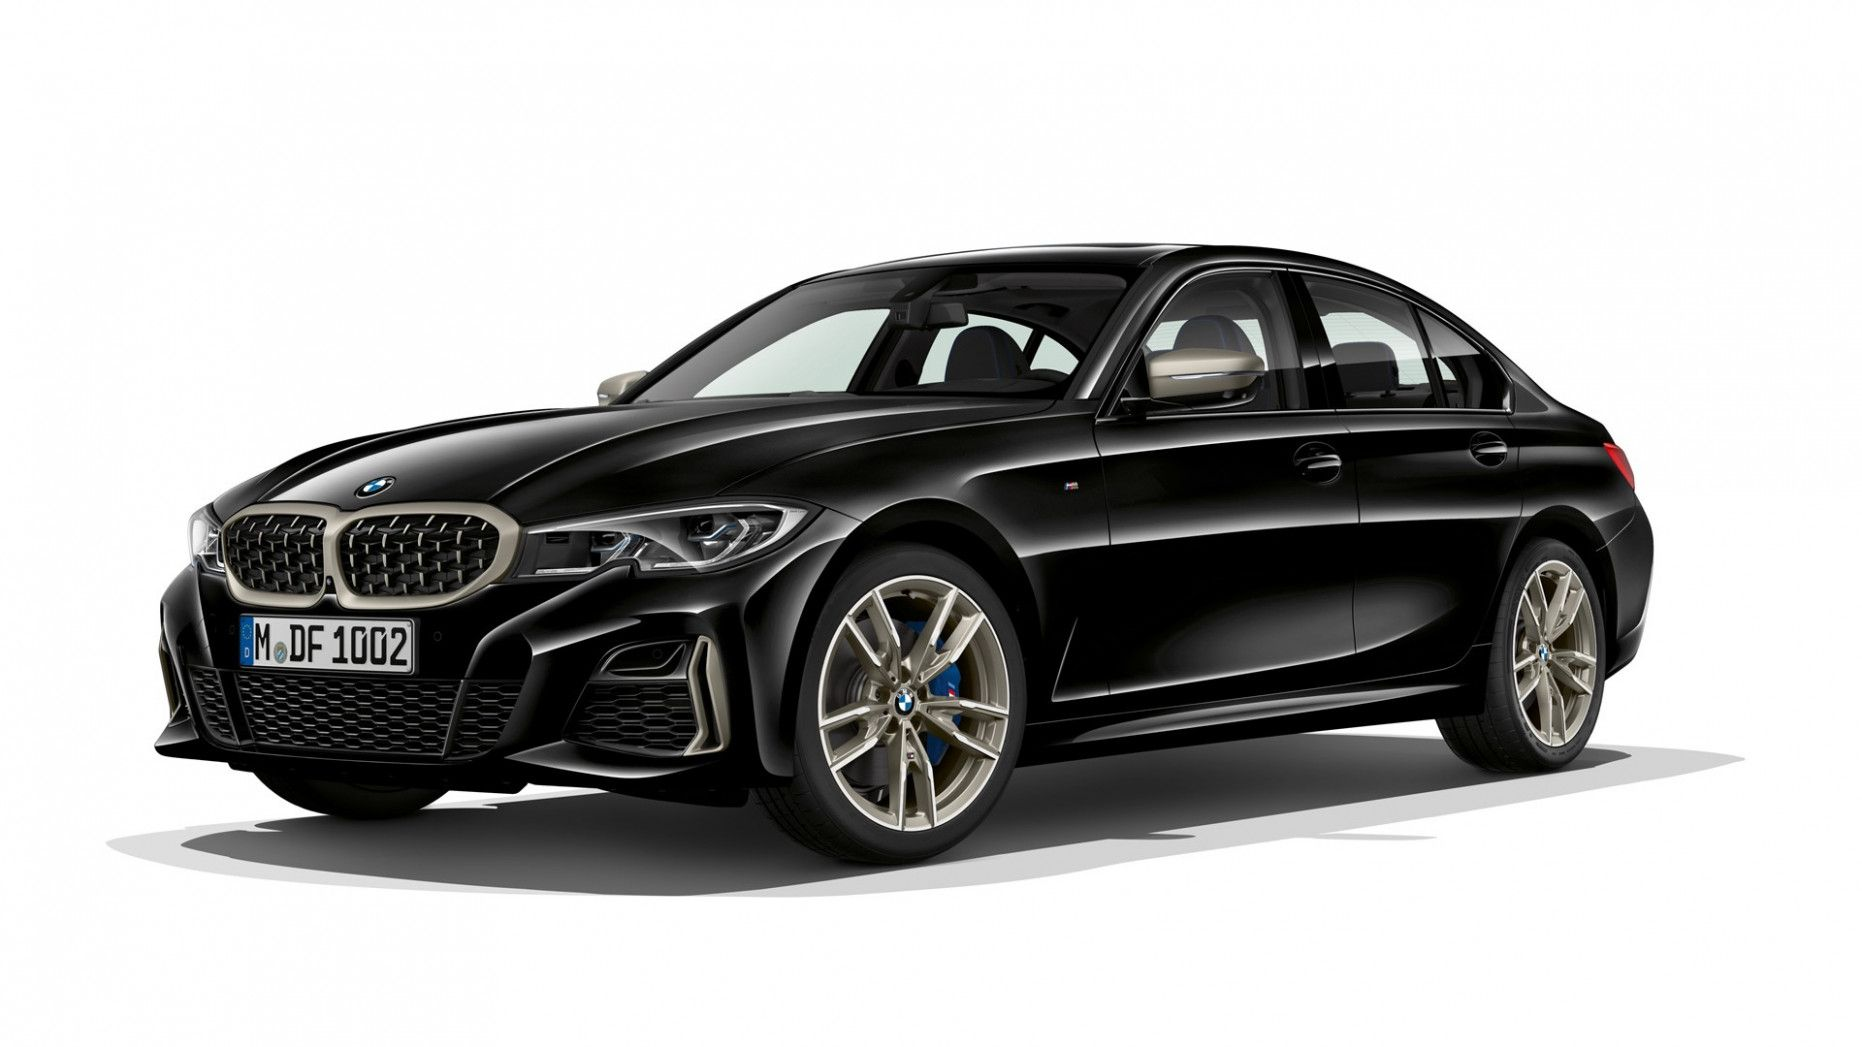 2020 Bmw M340i Price in 2020 Bmw, New bmw, Bmw 3 series